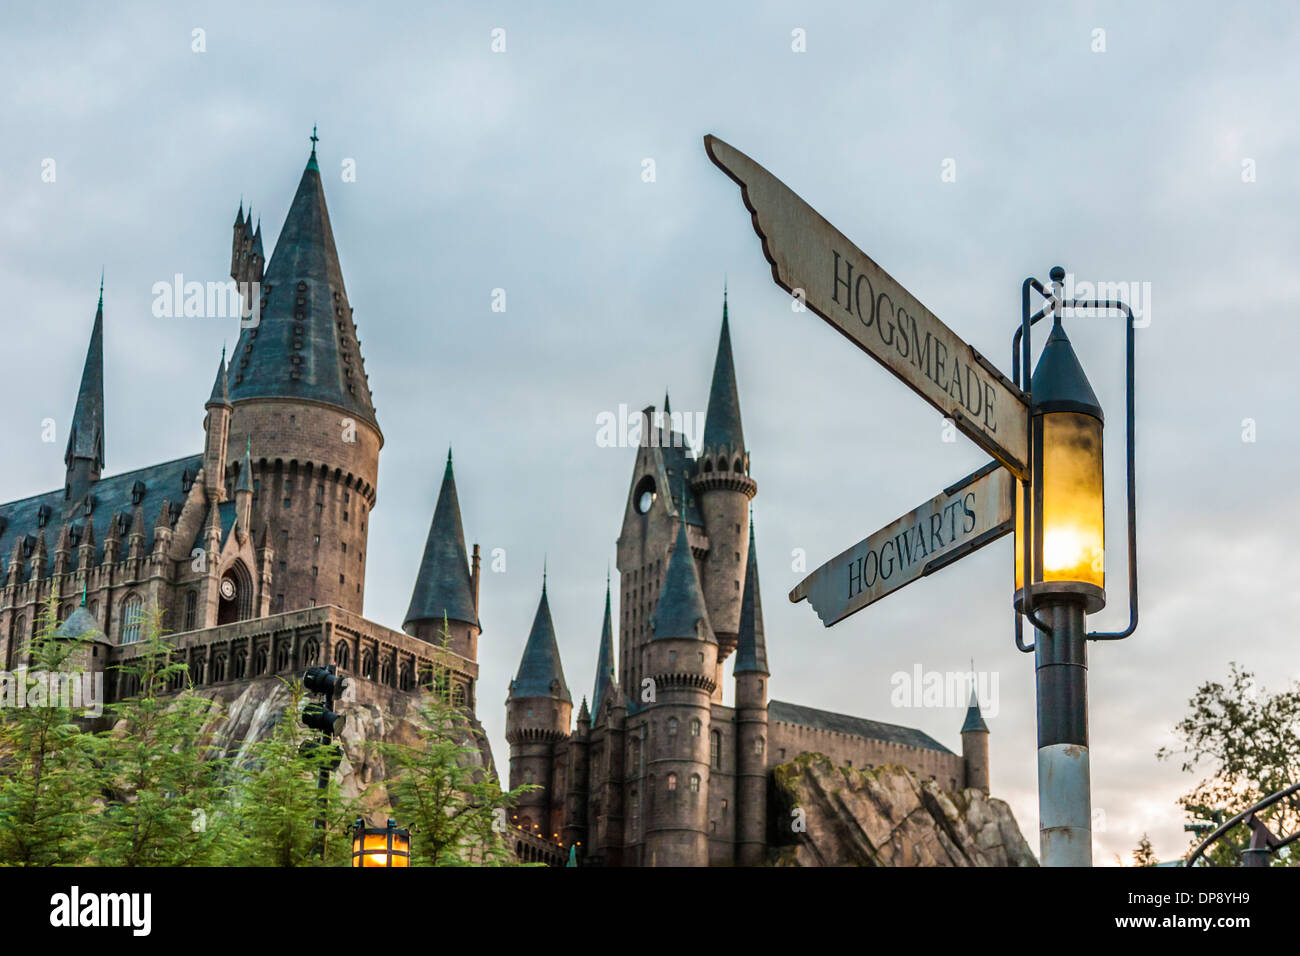 Street signs at corner of Hogsmeade and Hogwarts in front of castle in The Wizarding World of Harry Potter at Universal - Stock Image